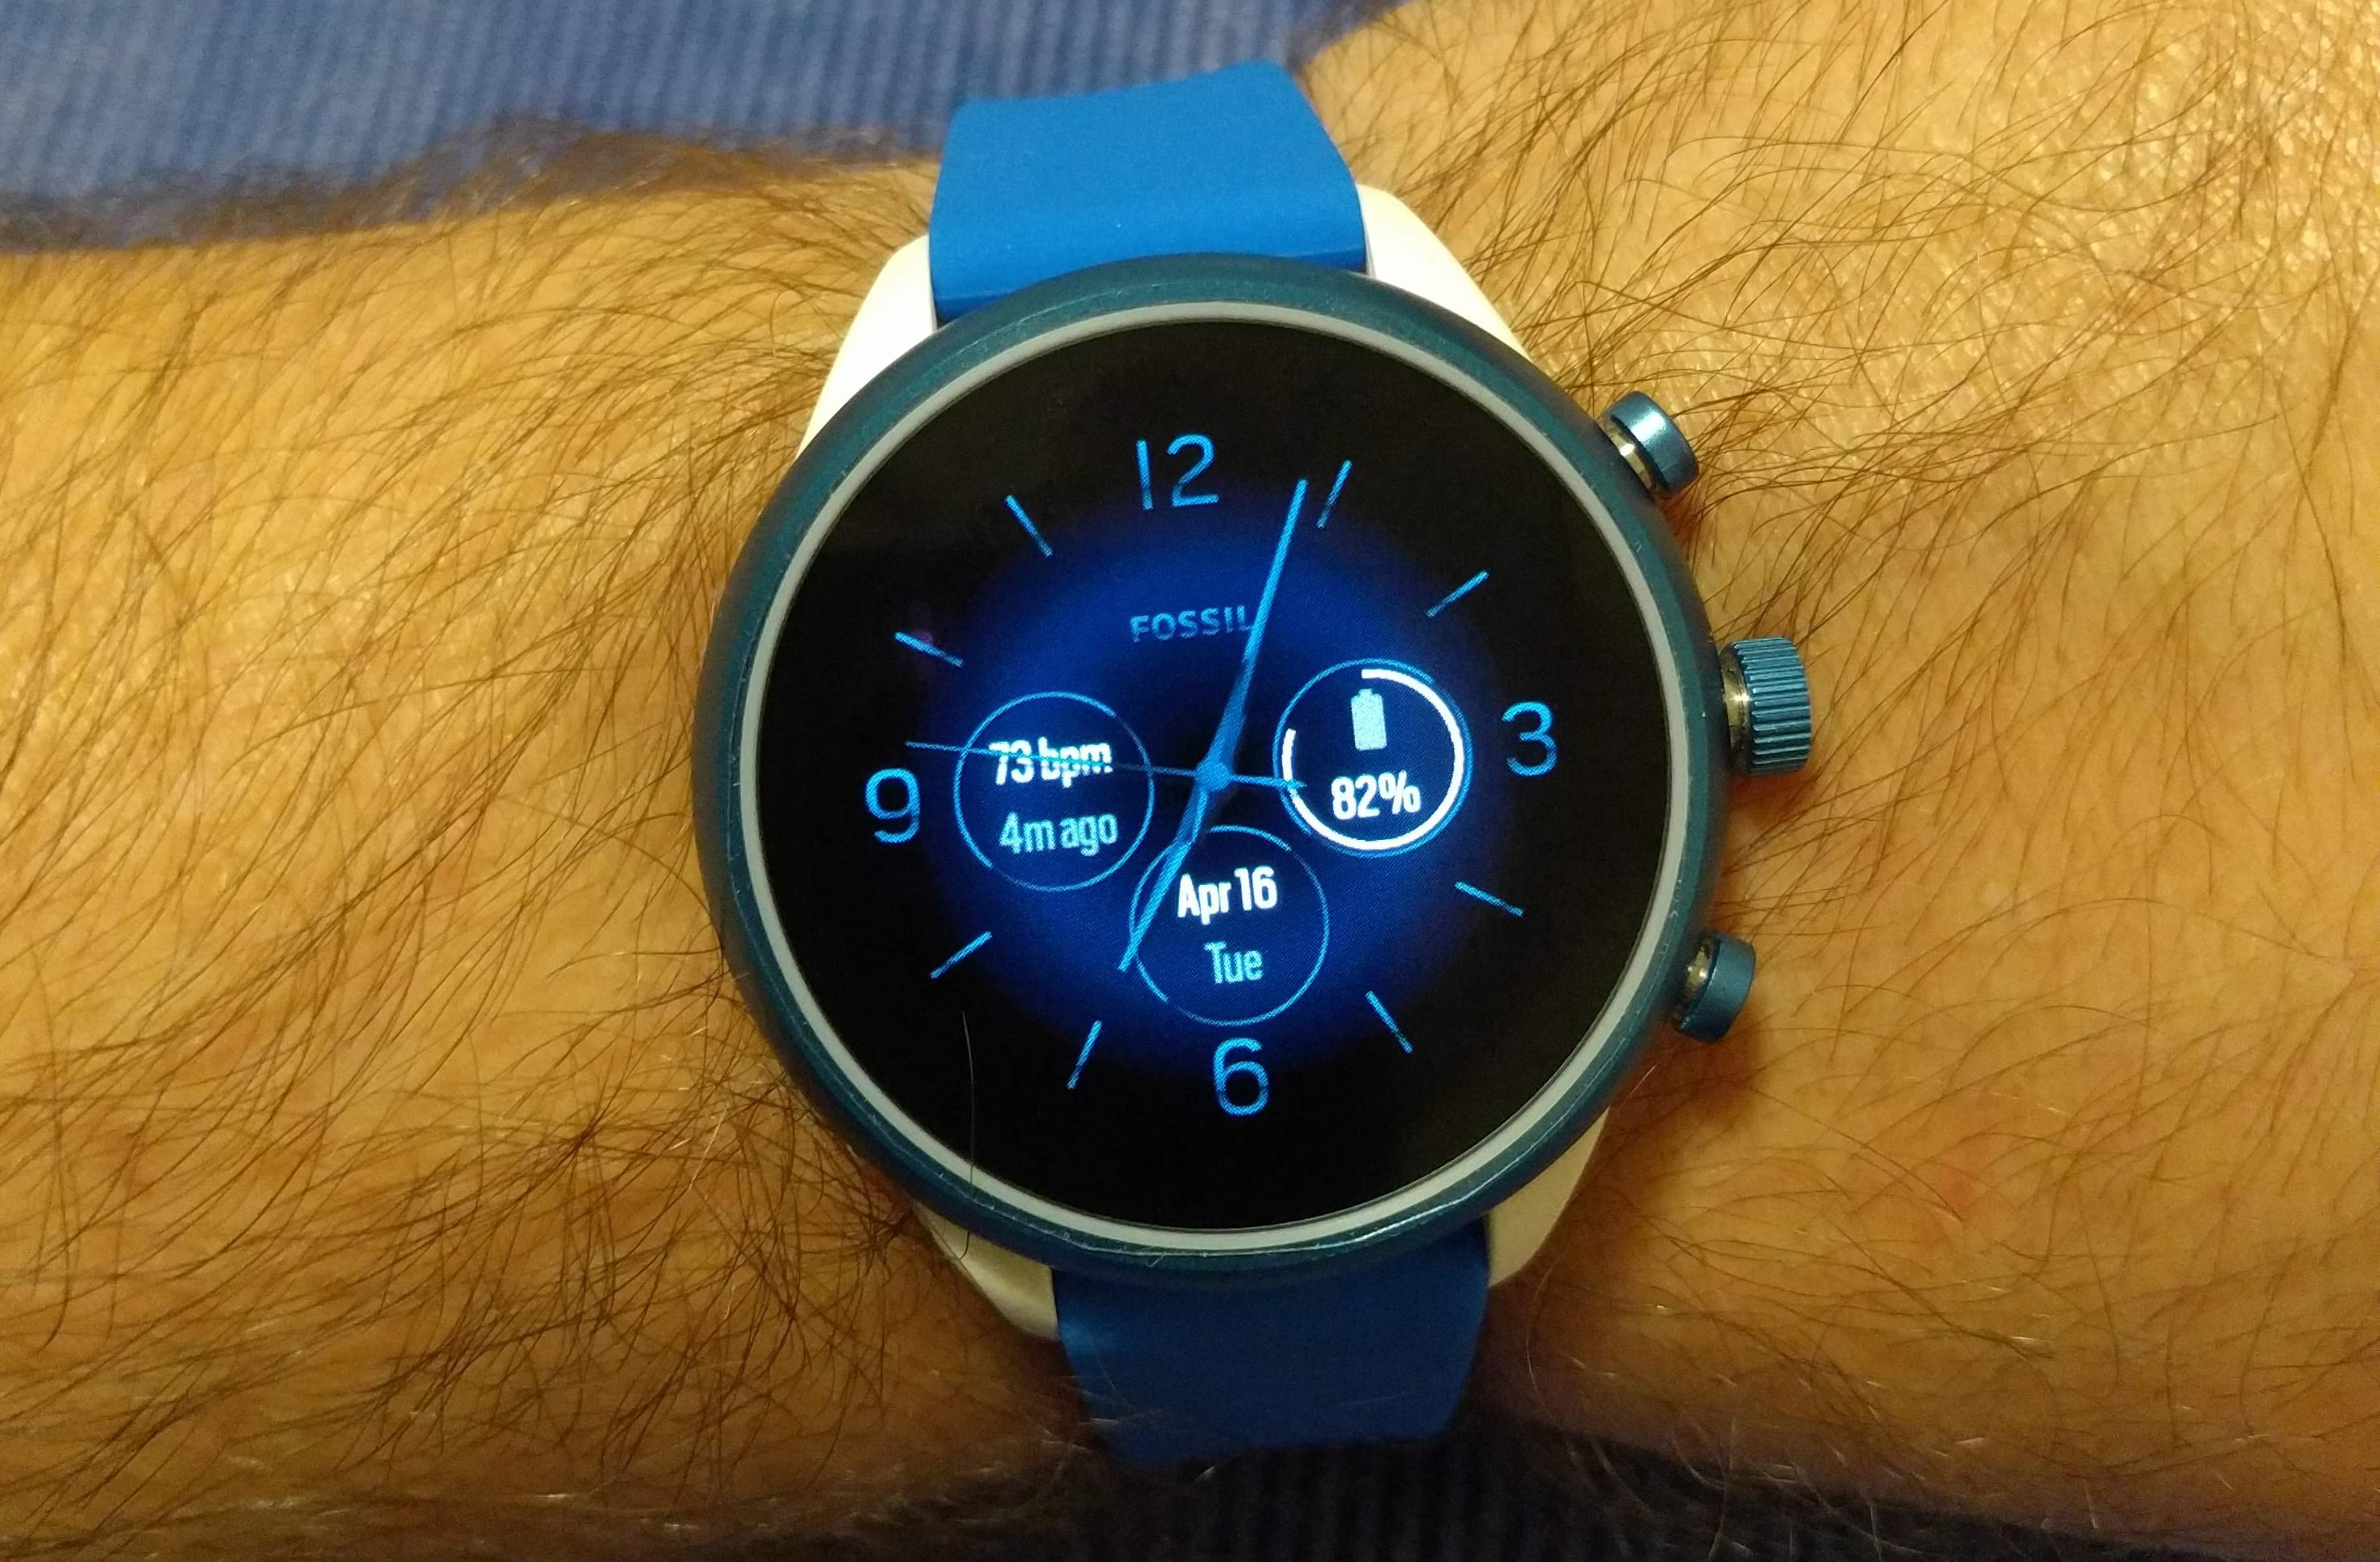 Fossil Sport: Double Battery Life with One Setting